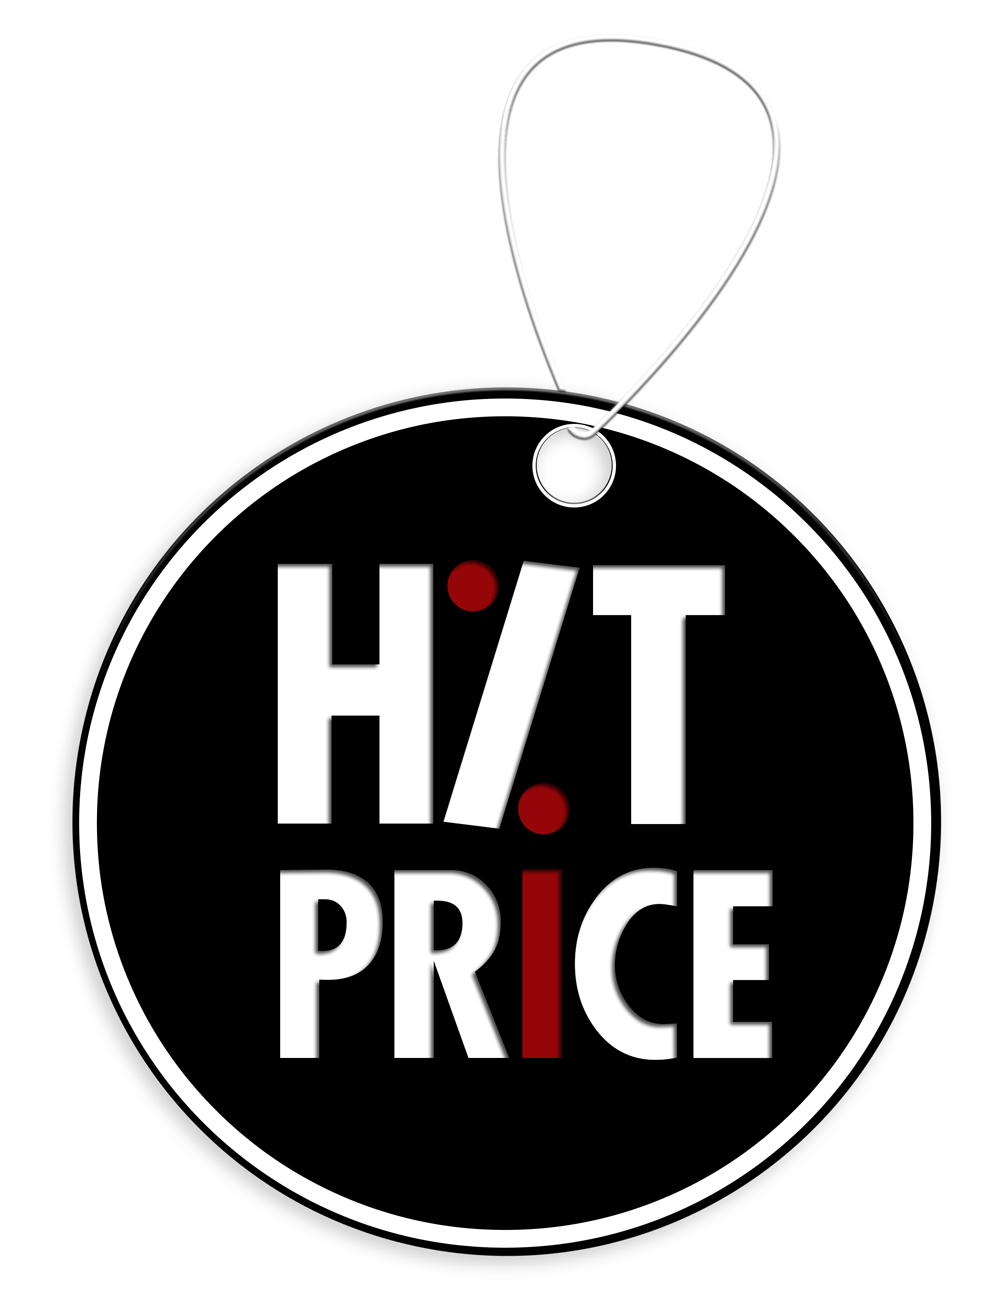 hitprice tag black 3